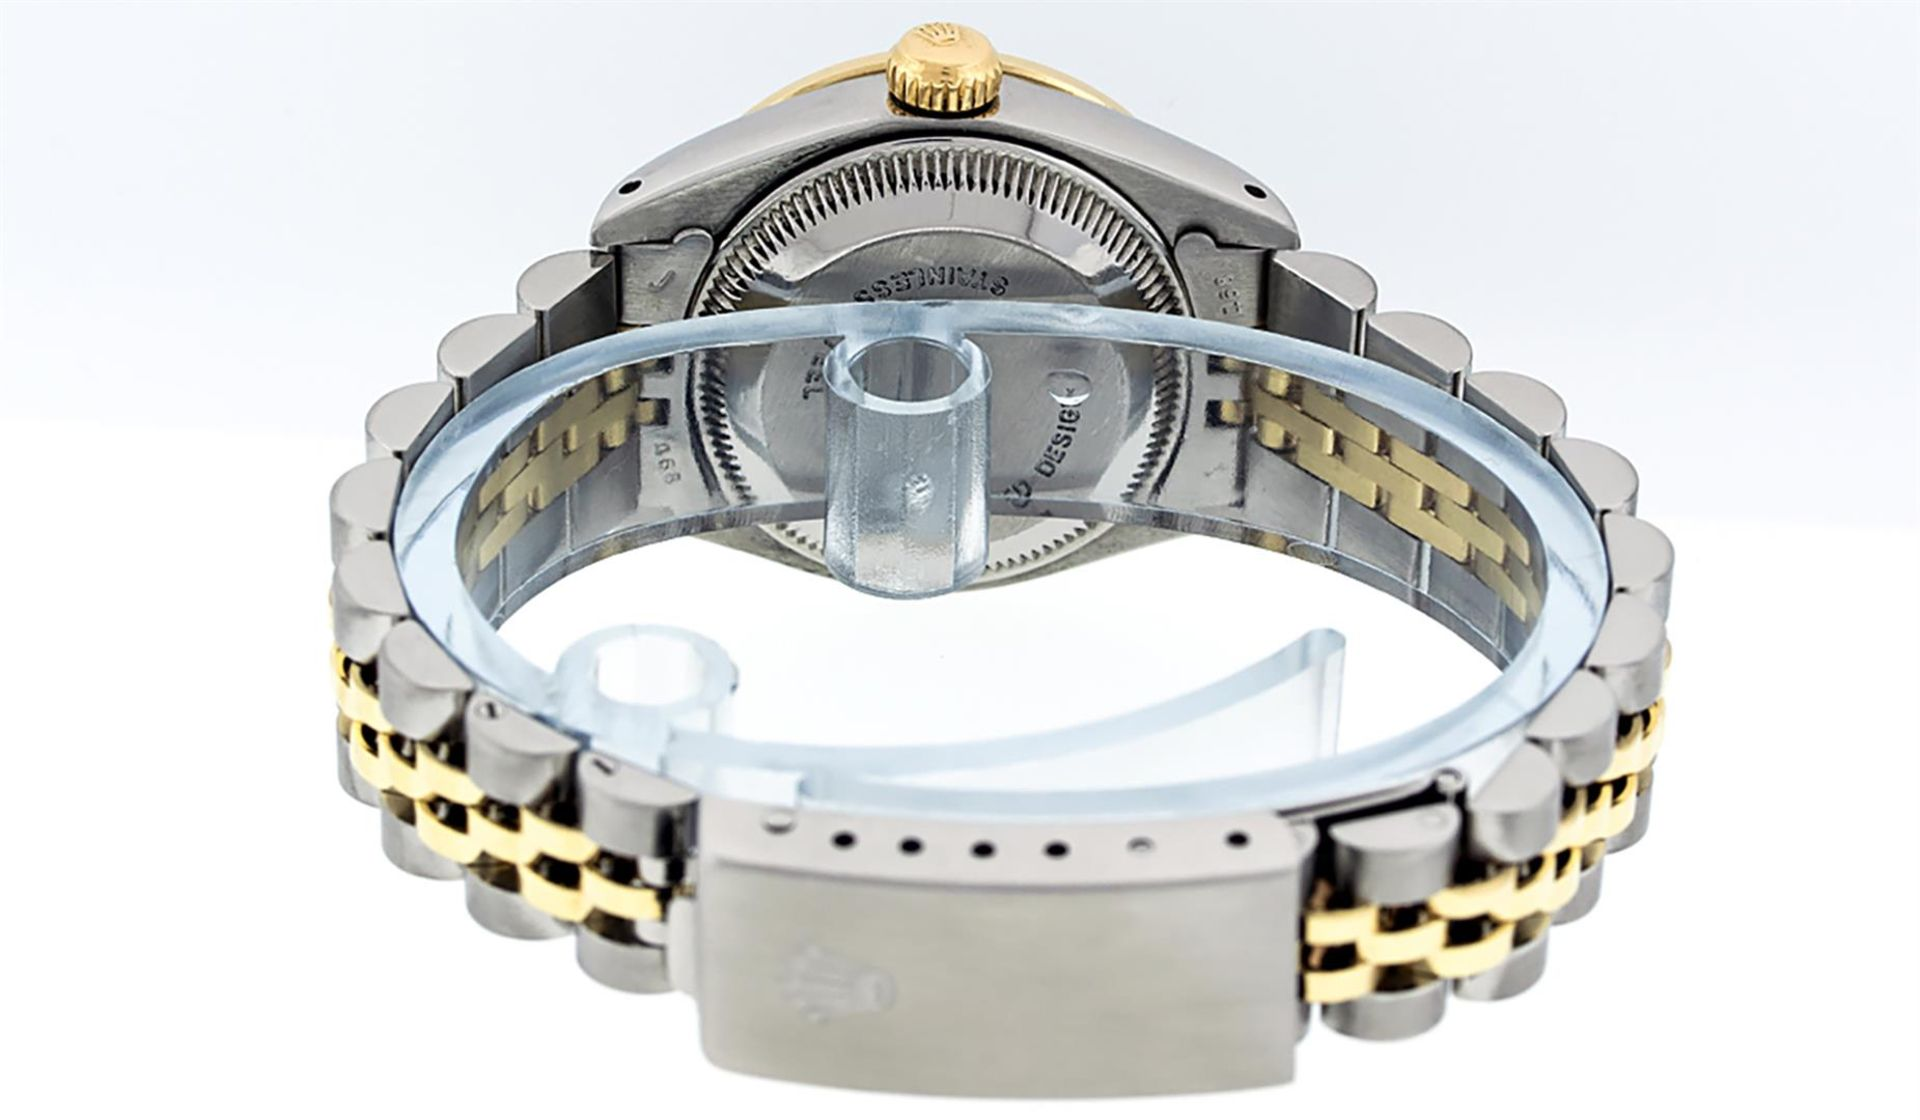 Rolex Ladies 2 Tone MOP Sapphire & Ruby 26MM Oyster Perpetual Datejust Wriswatch - Image 7 of 9